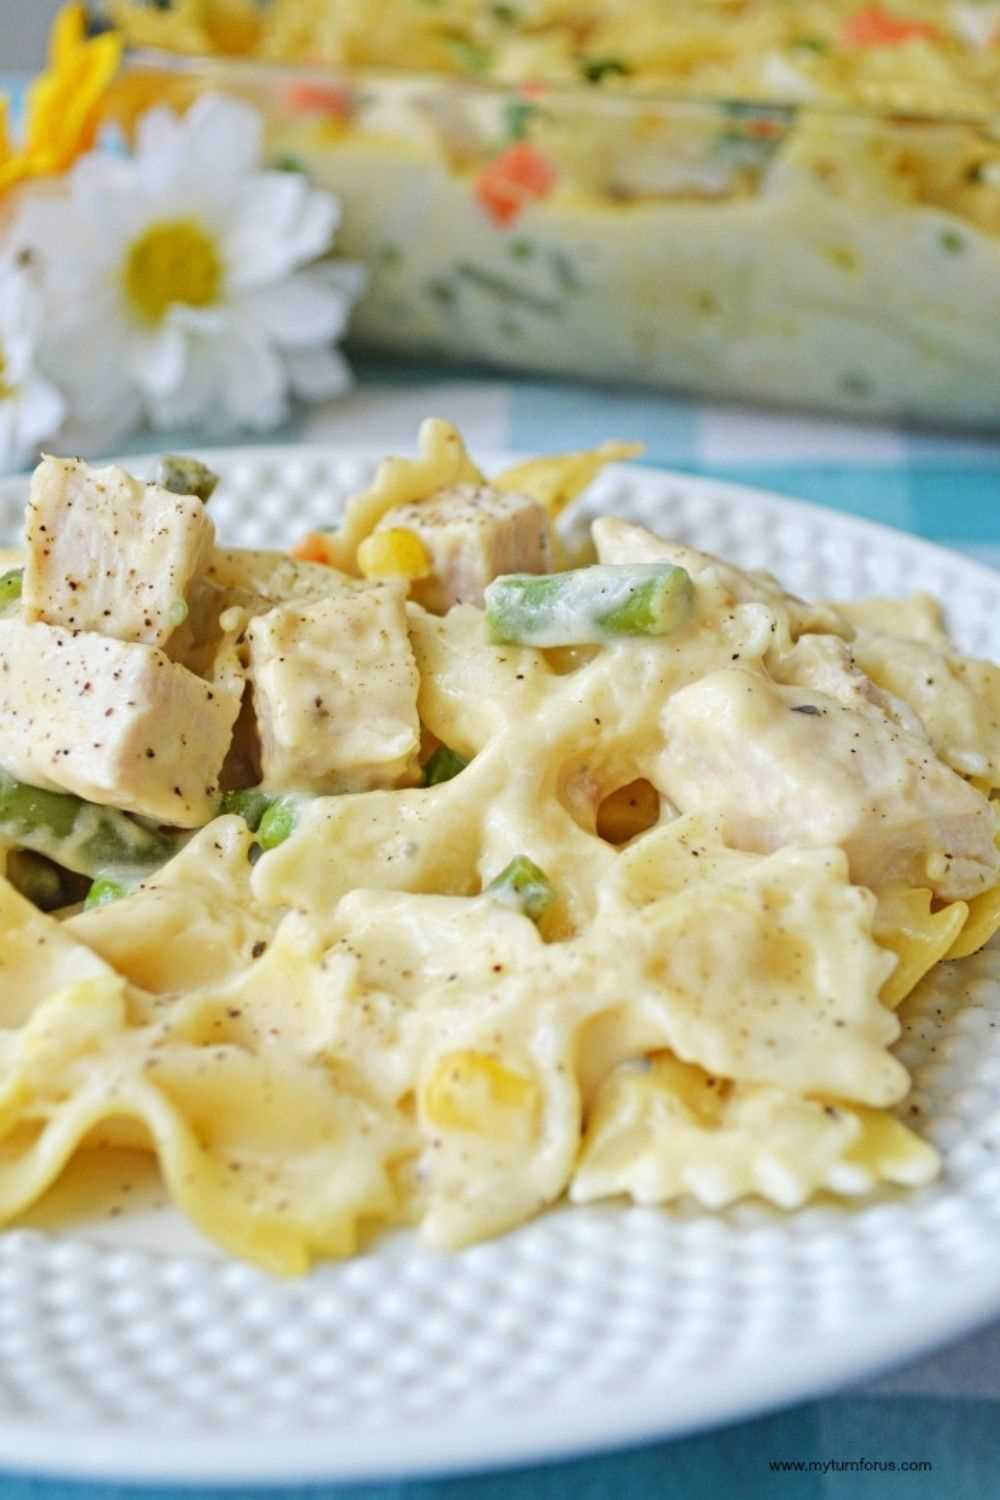 How To Make An Easy Turkey Or Chicken Noodle Casserole